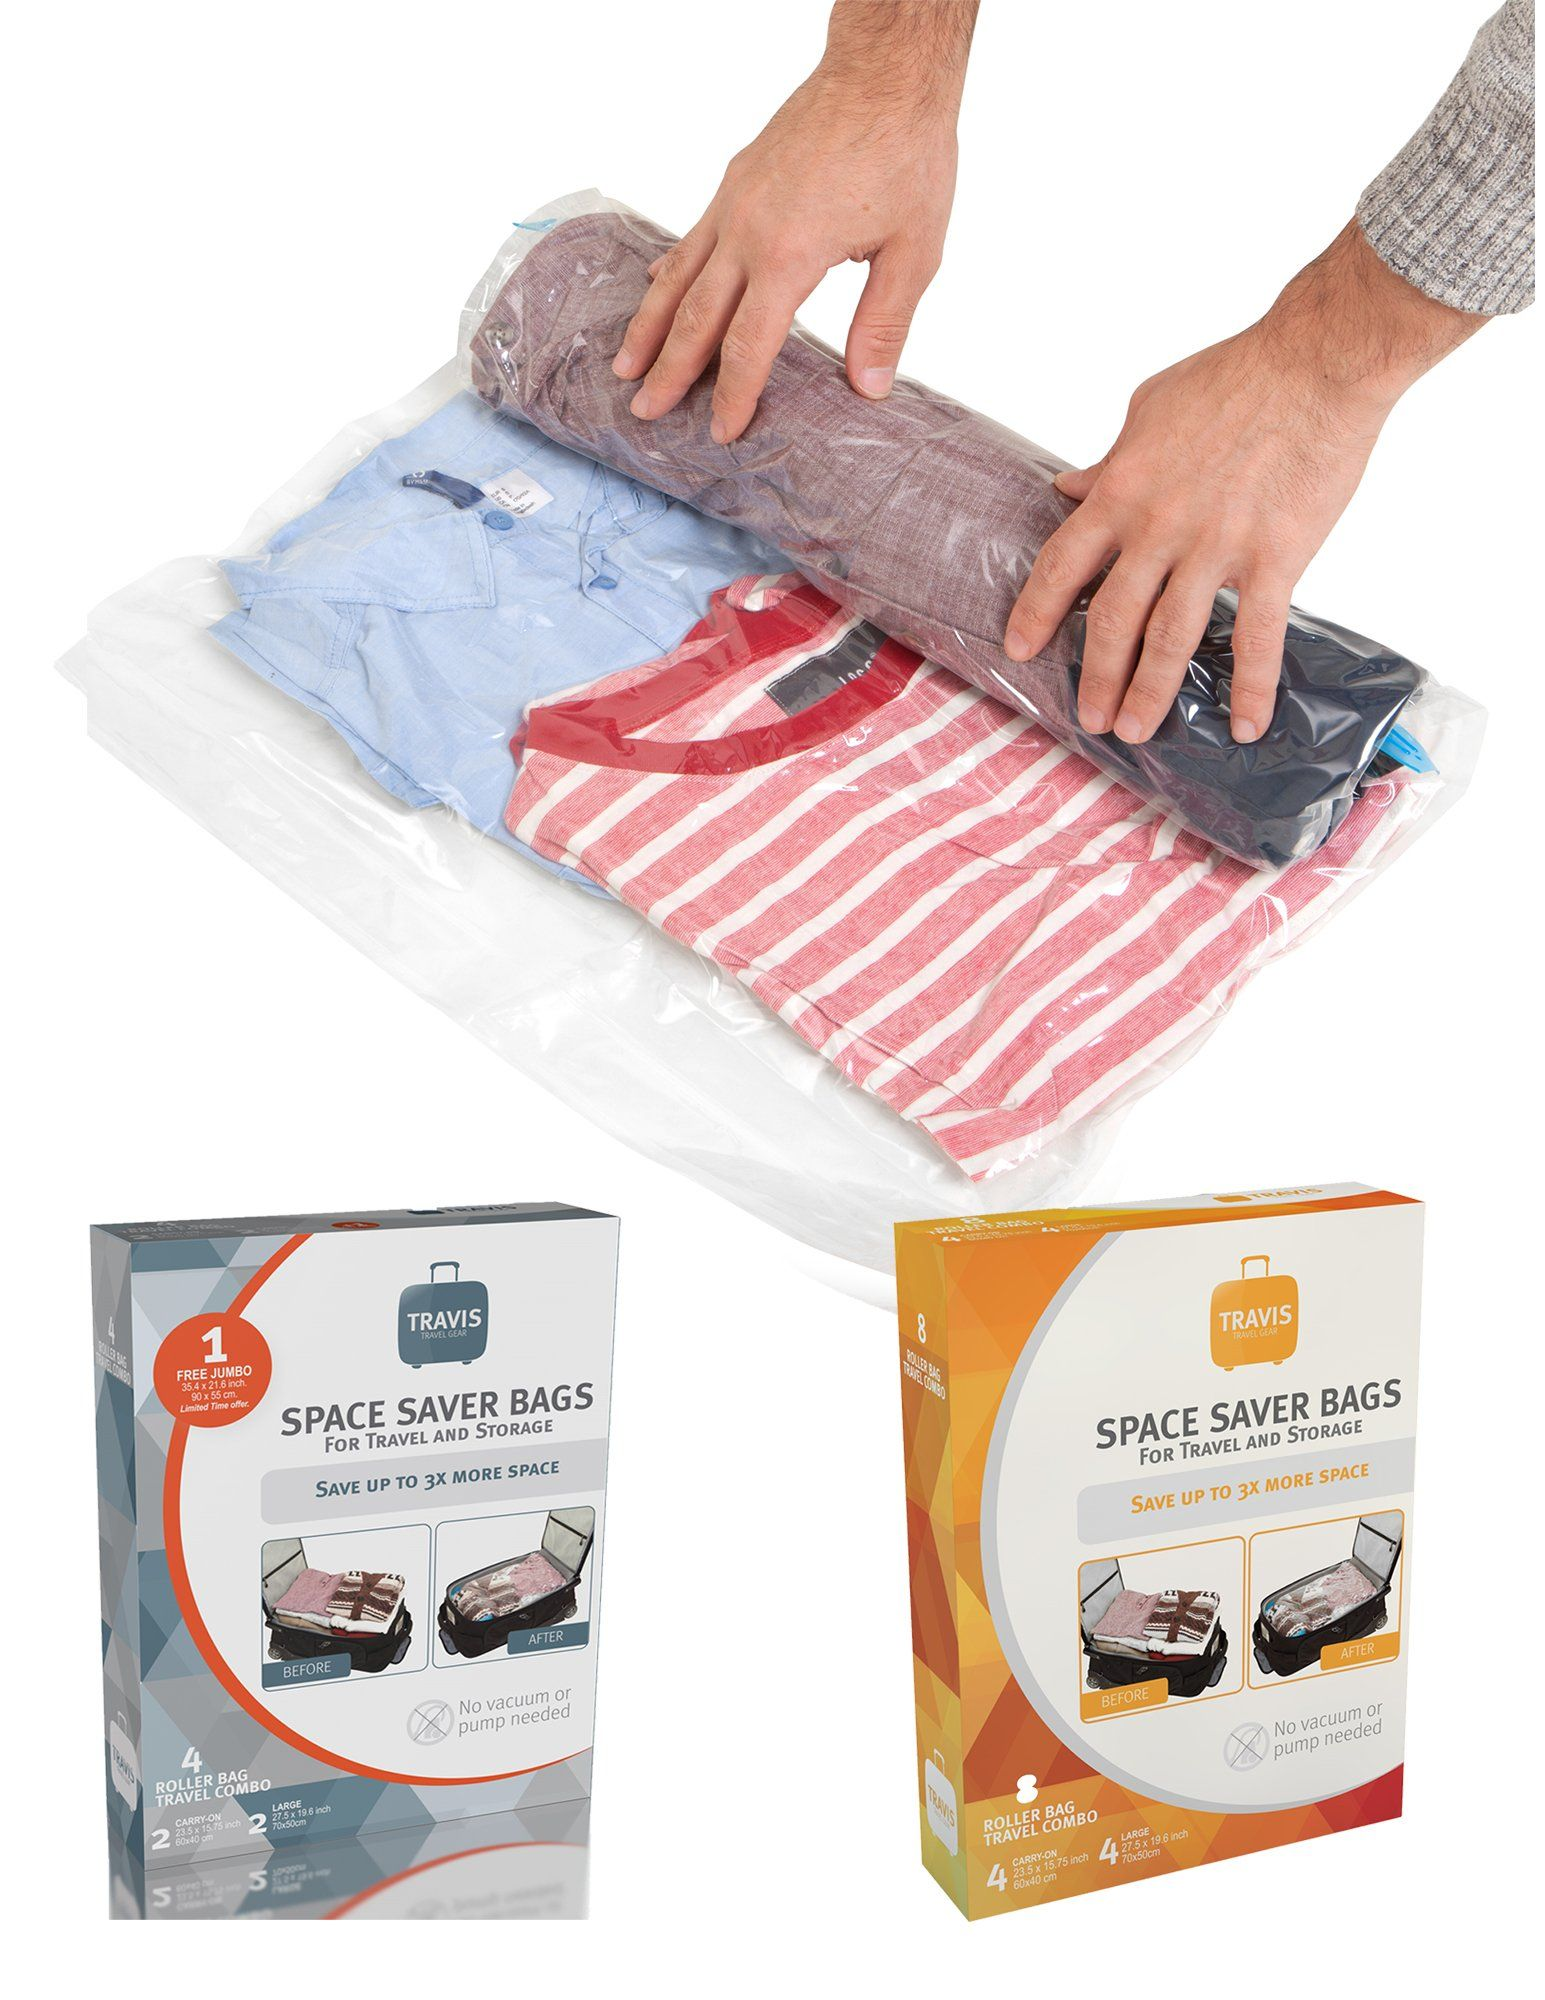 Travis Travel Gear Space Saver Bags No Vacuum Rolling Compression